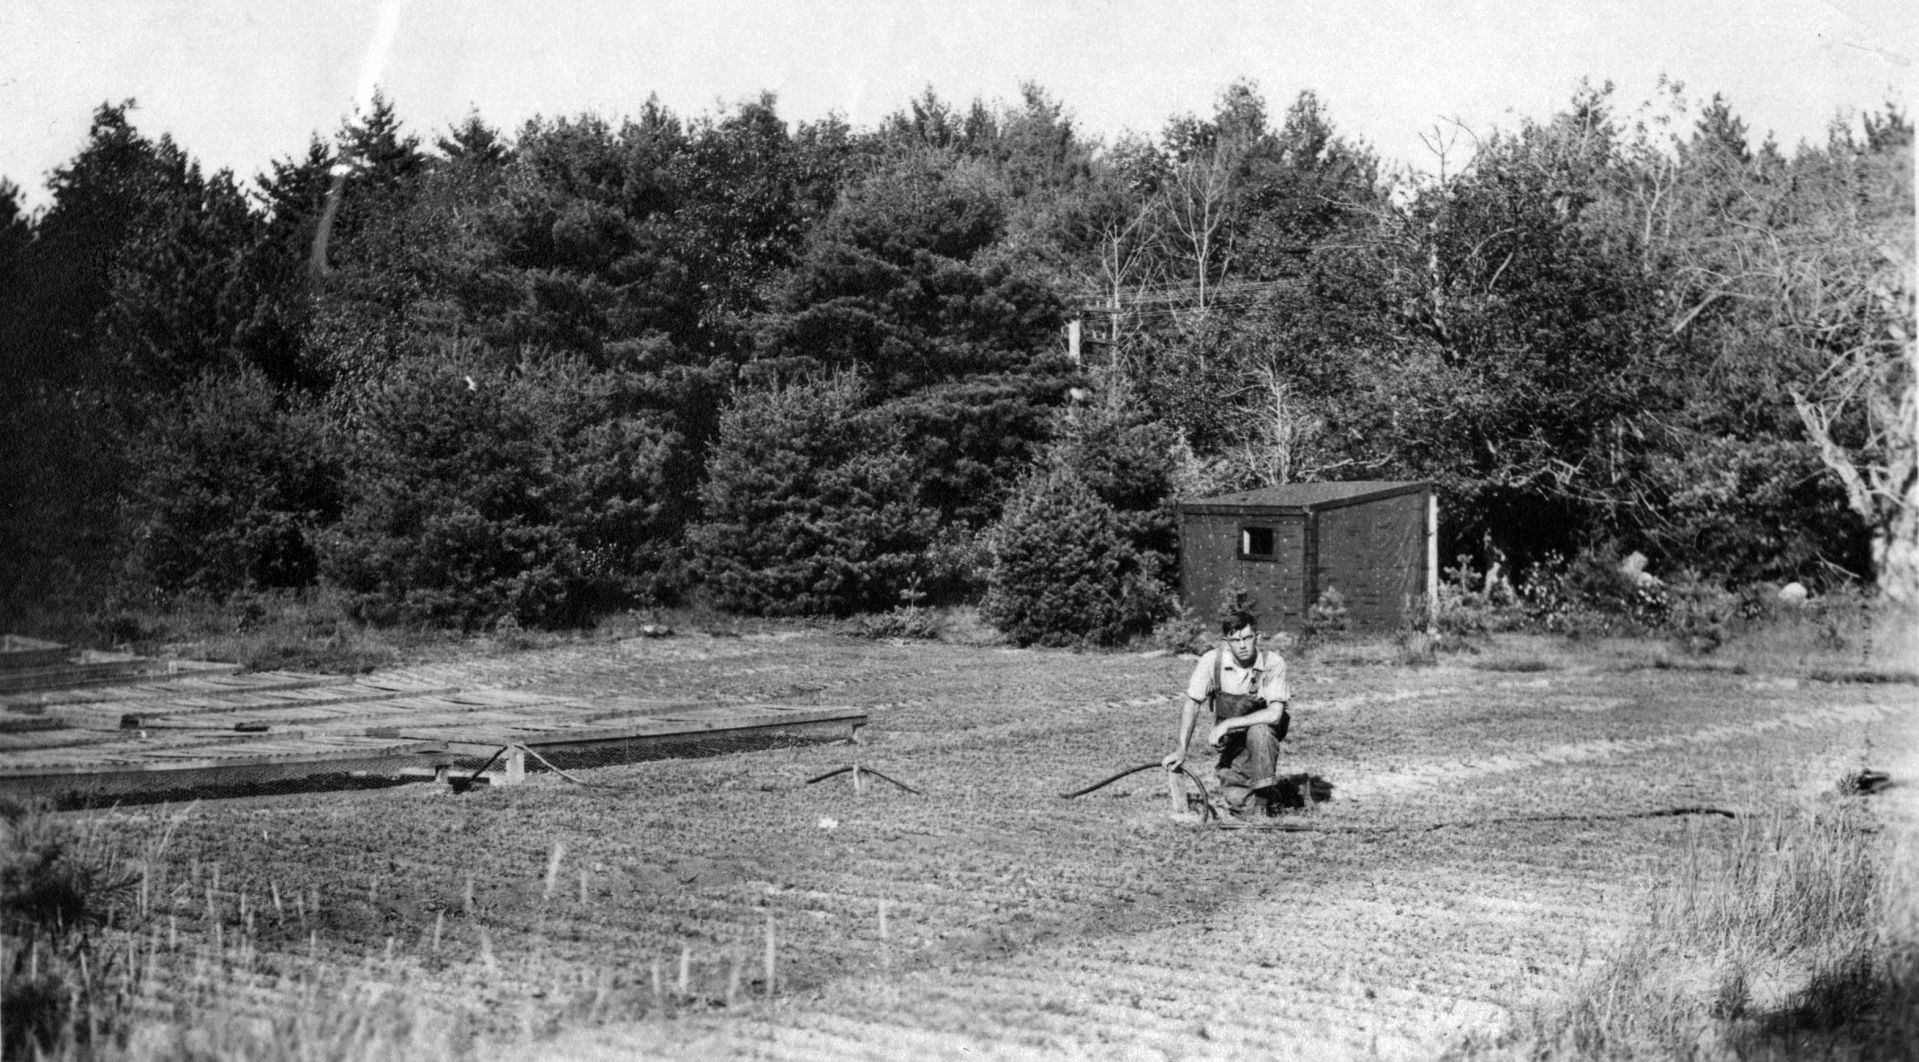 An unidentified worker tends to seedlings at the Bates Forest in this undated photograph. (Muskie Archives and Special Collections Library)